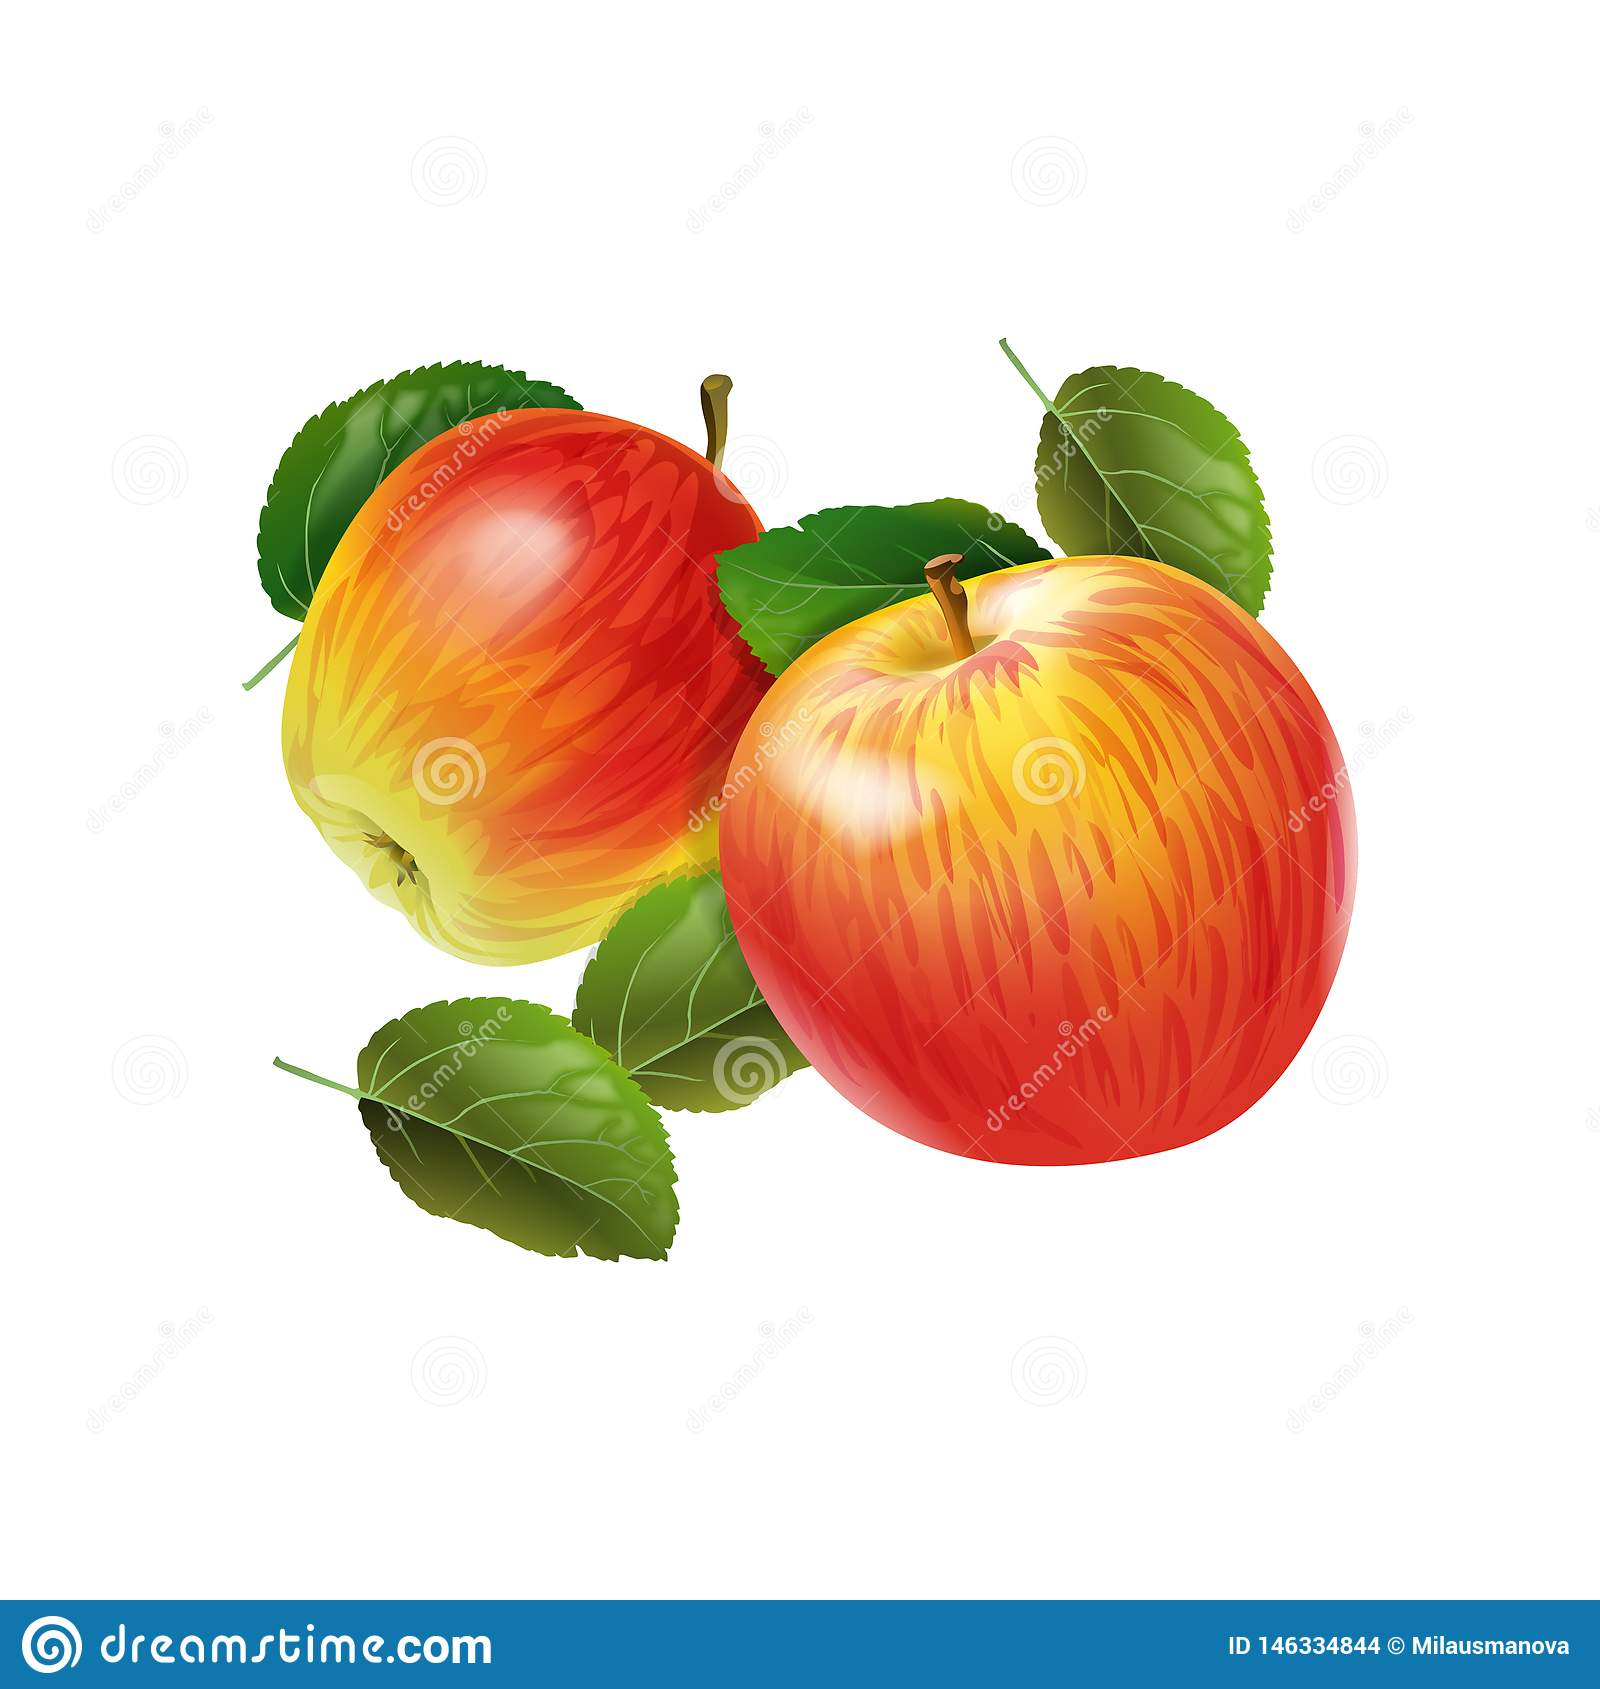 Red apple with green leaves on the white background